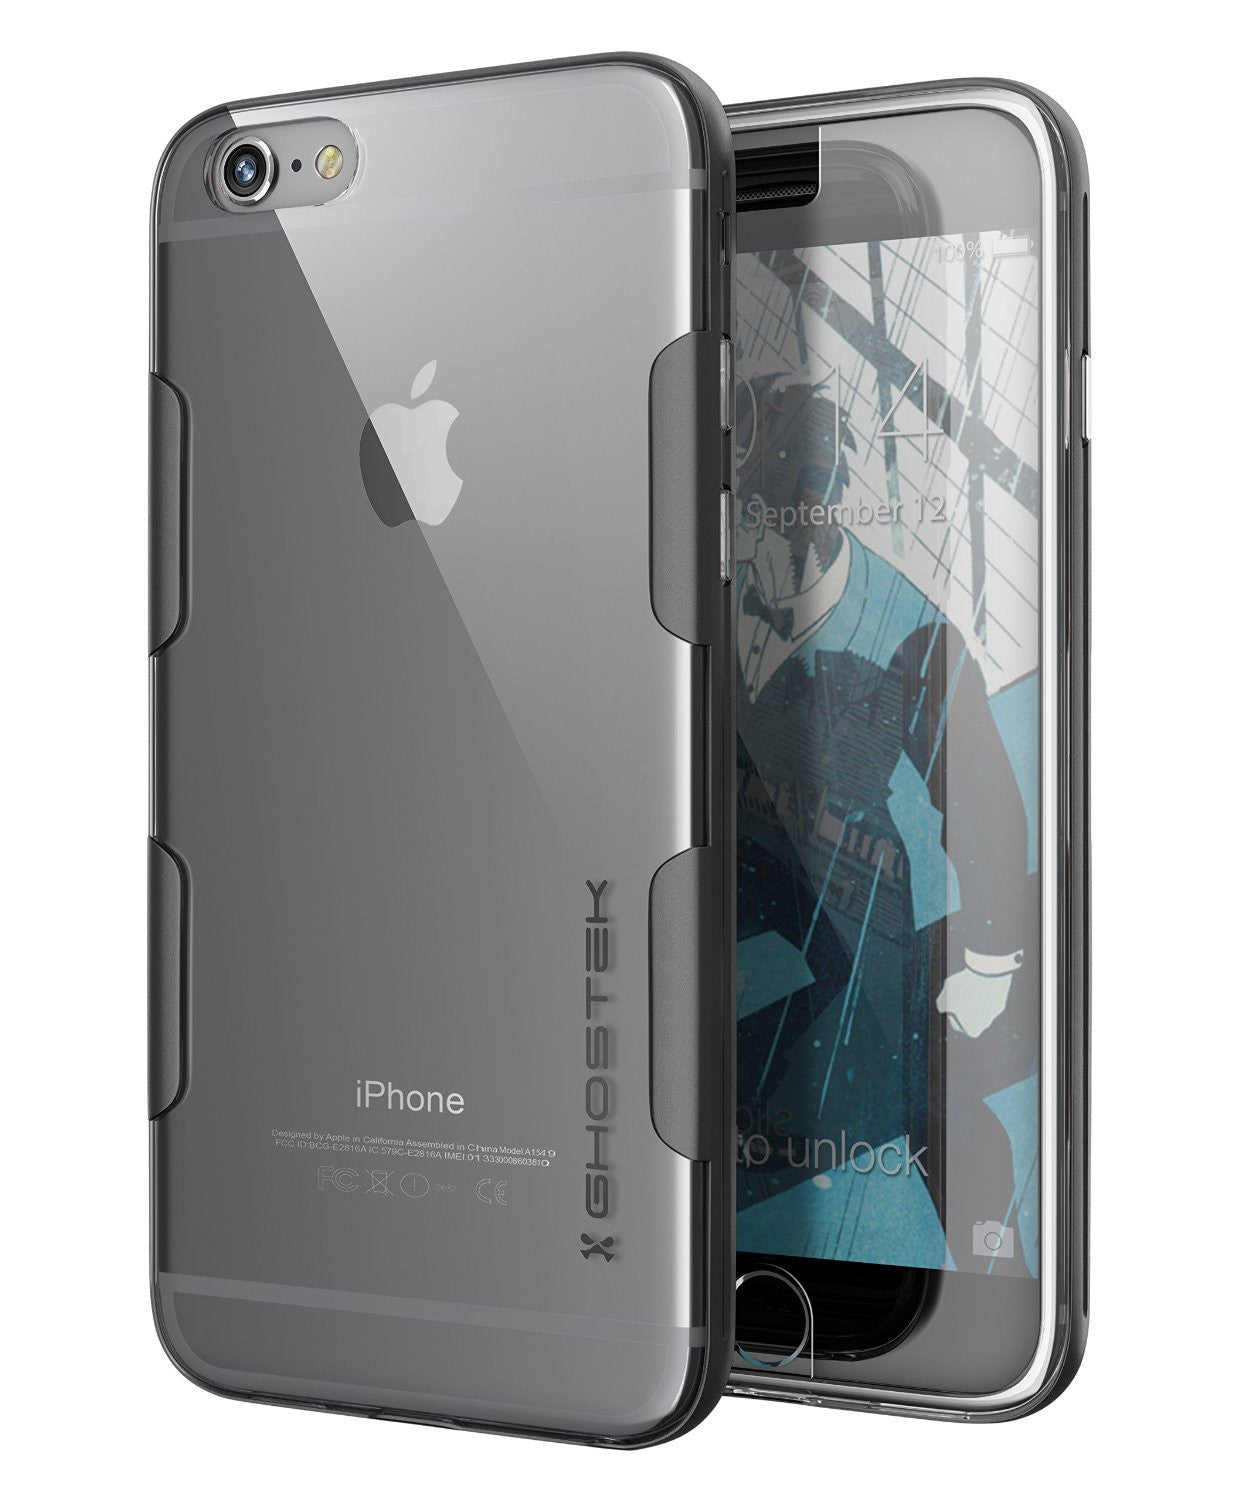 iphone 6s case iphone 6s plus space grey ghostek cloak series for apple 1032